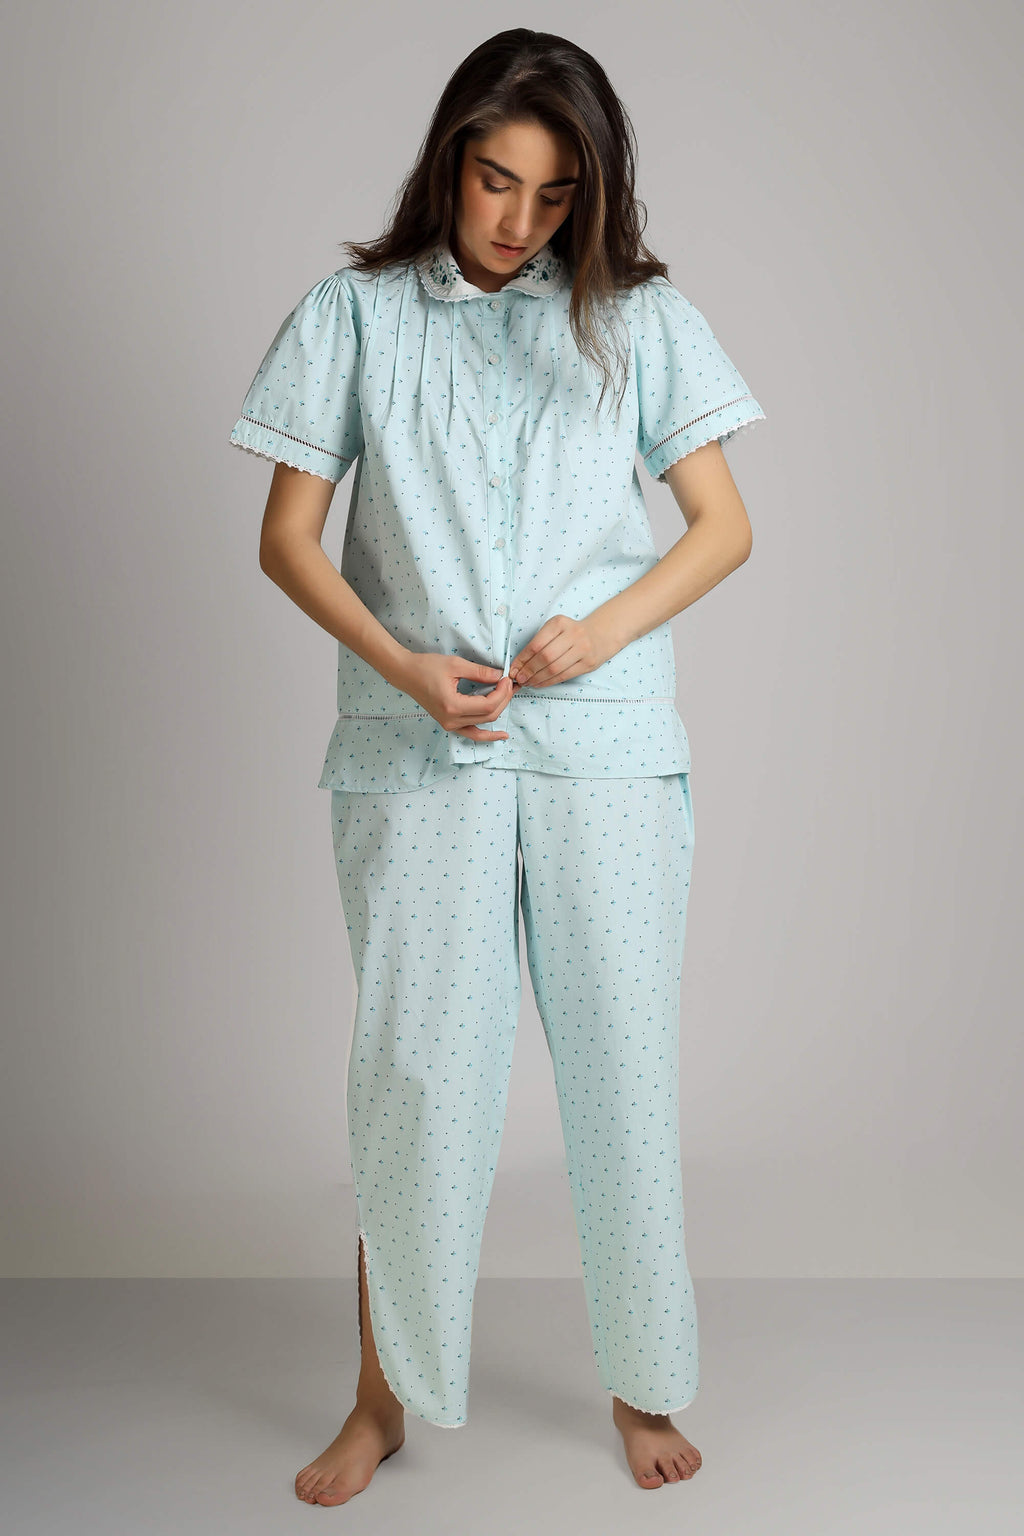 Agatha, Full Sleeve Nightdress